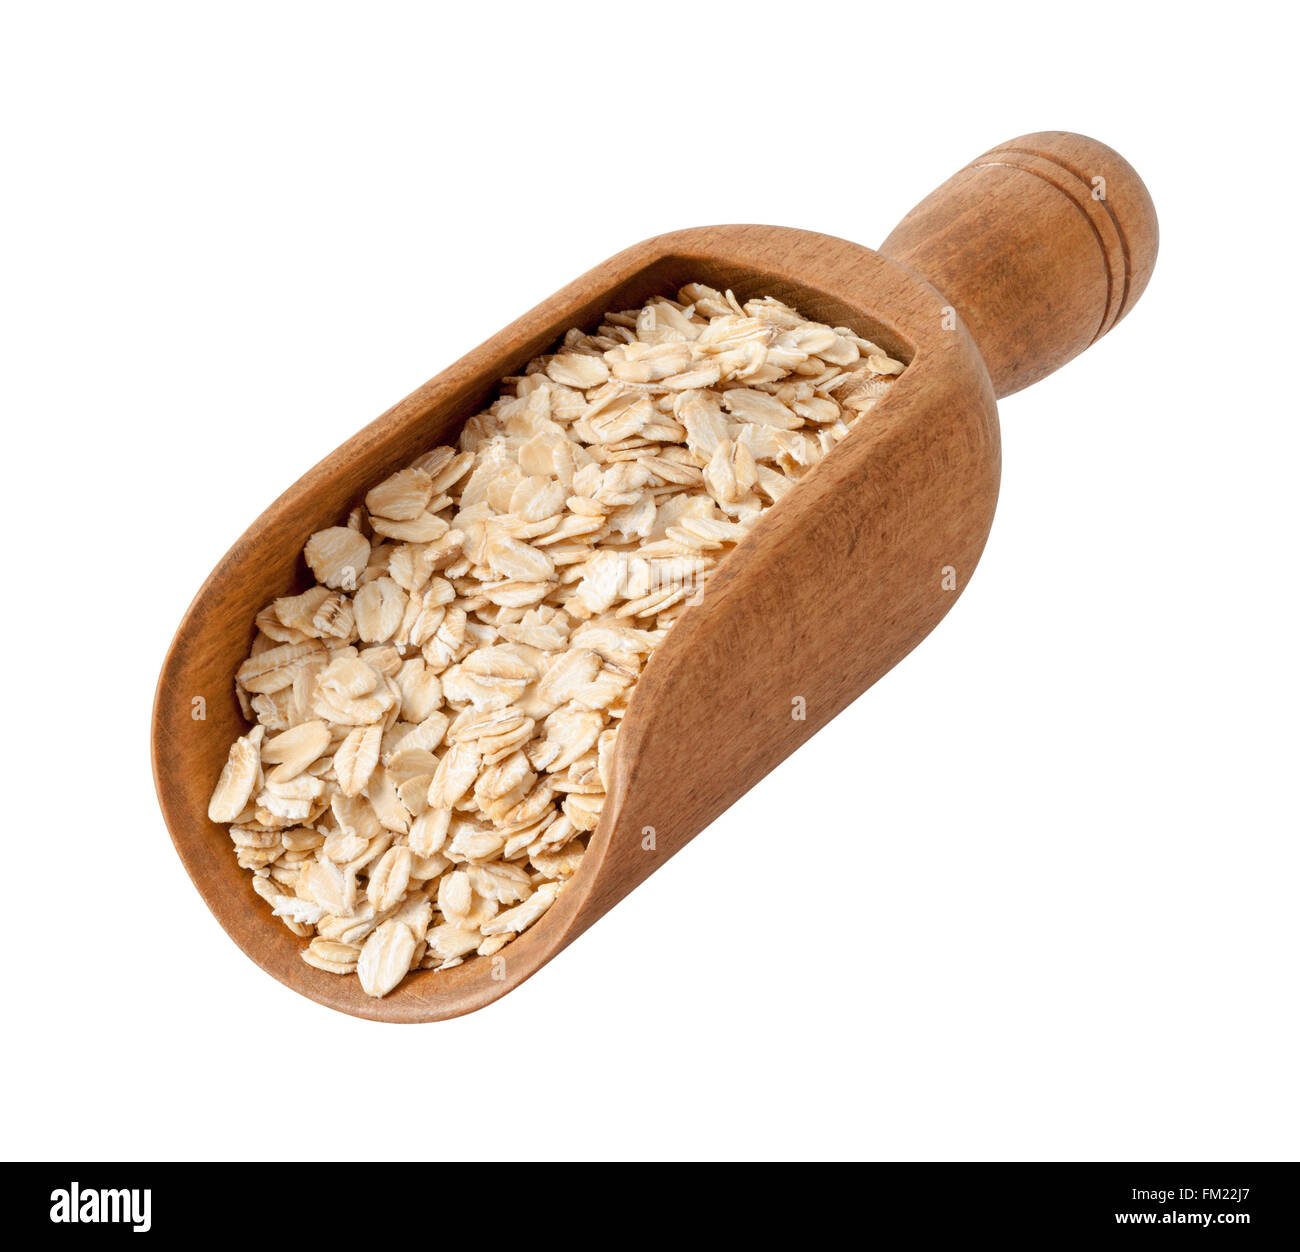 Organic Rolled Oats in a Wood Scoop. The image is a cut out, isolated on a white background. - Stock Image